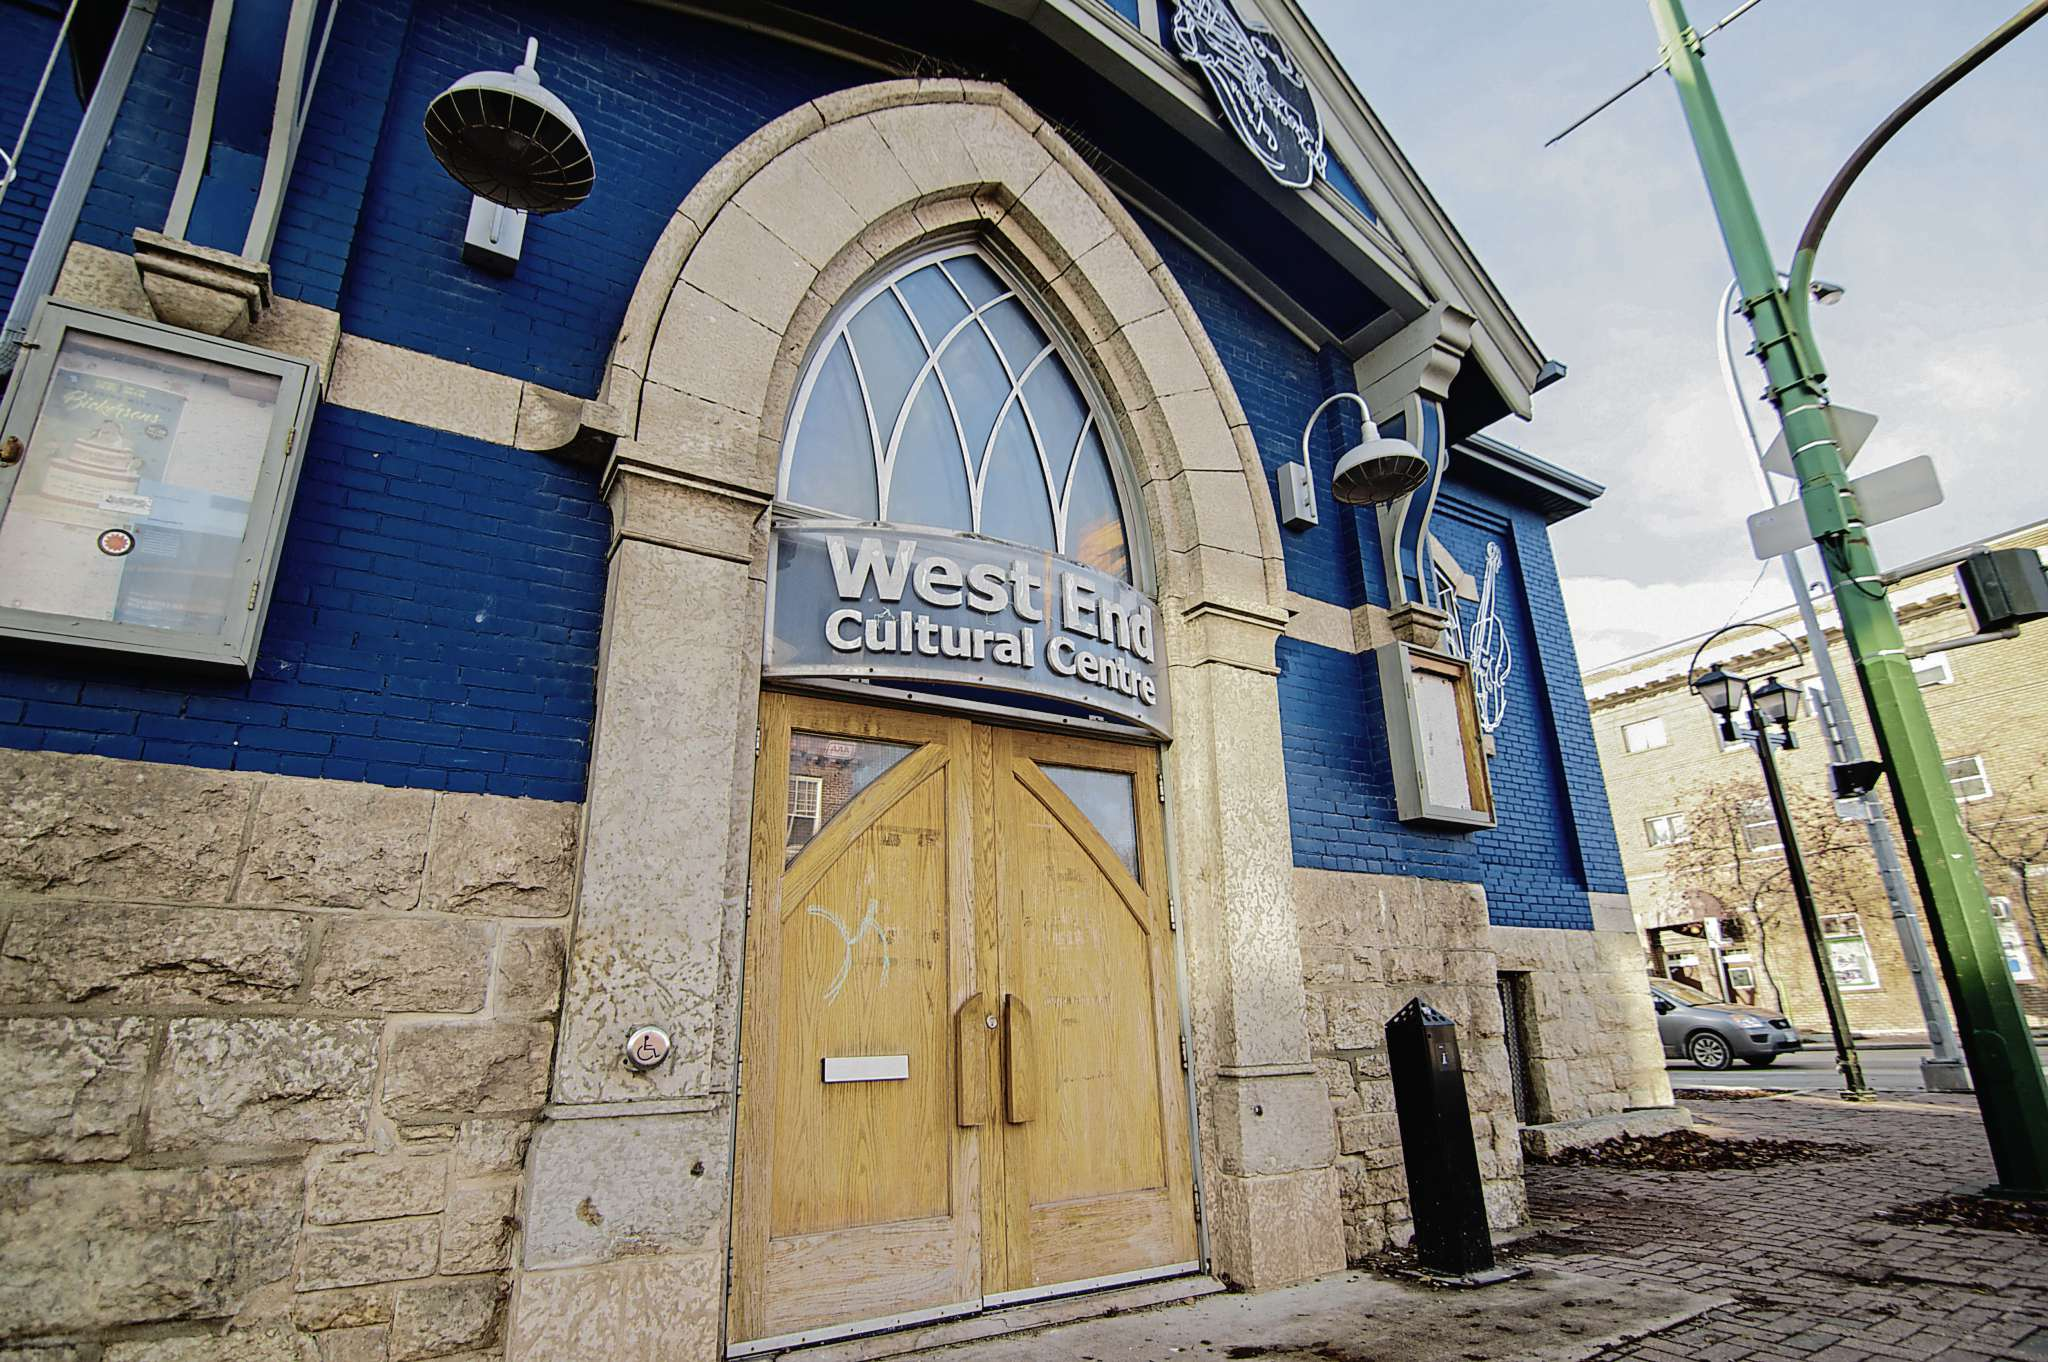 The West End Cultural Centre was recently awarded for community excellence at the Western Canada Music Awards.